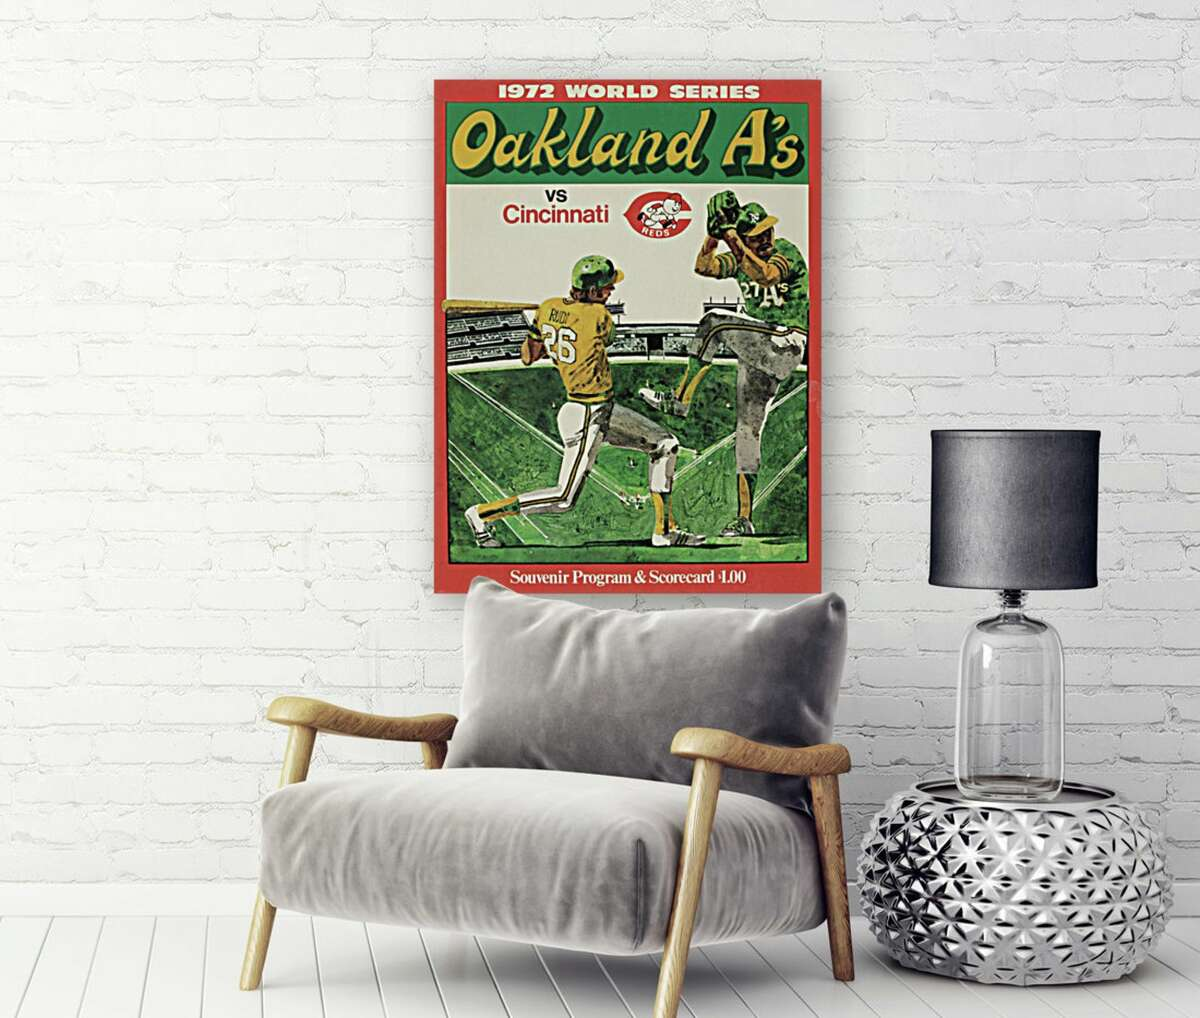 Etsy and eBay have lots of interesting and vintage sports merch for the Bay Area sports fan in your life.